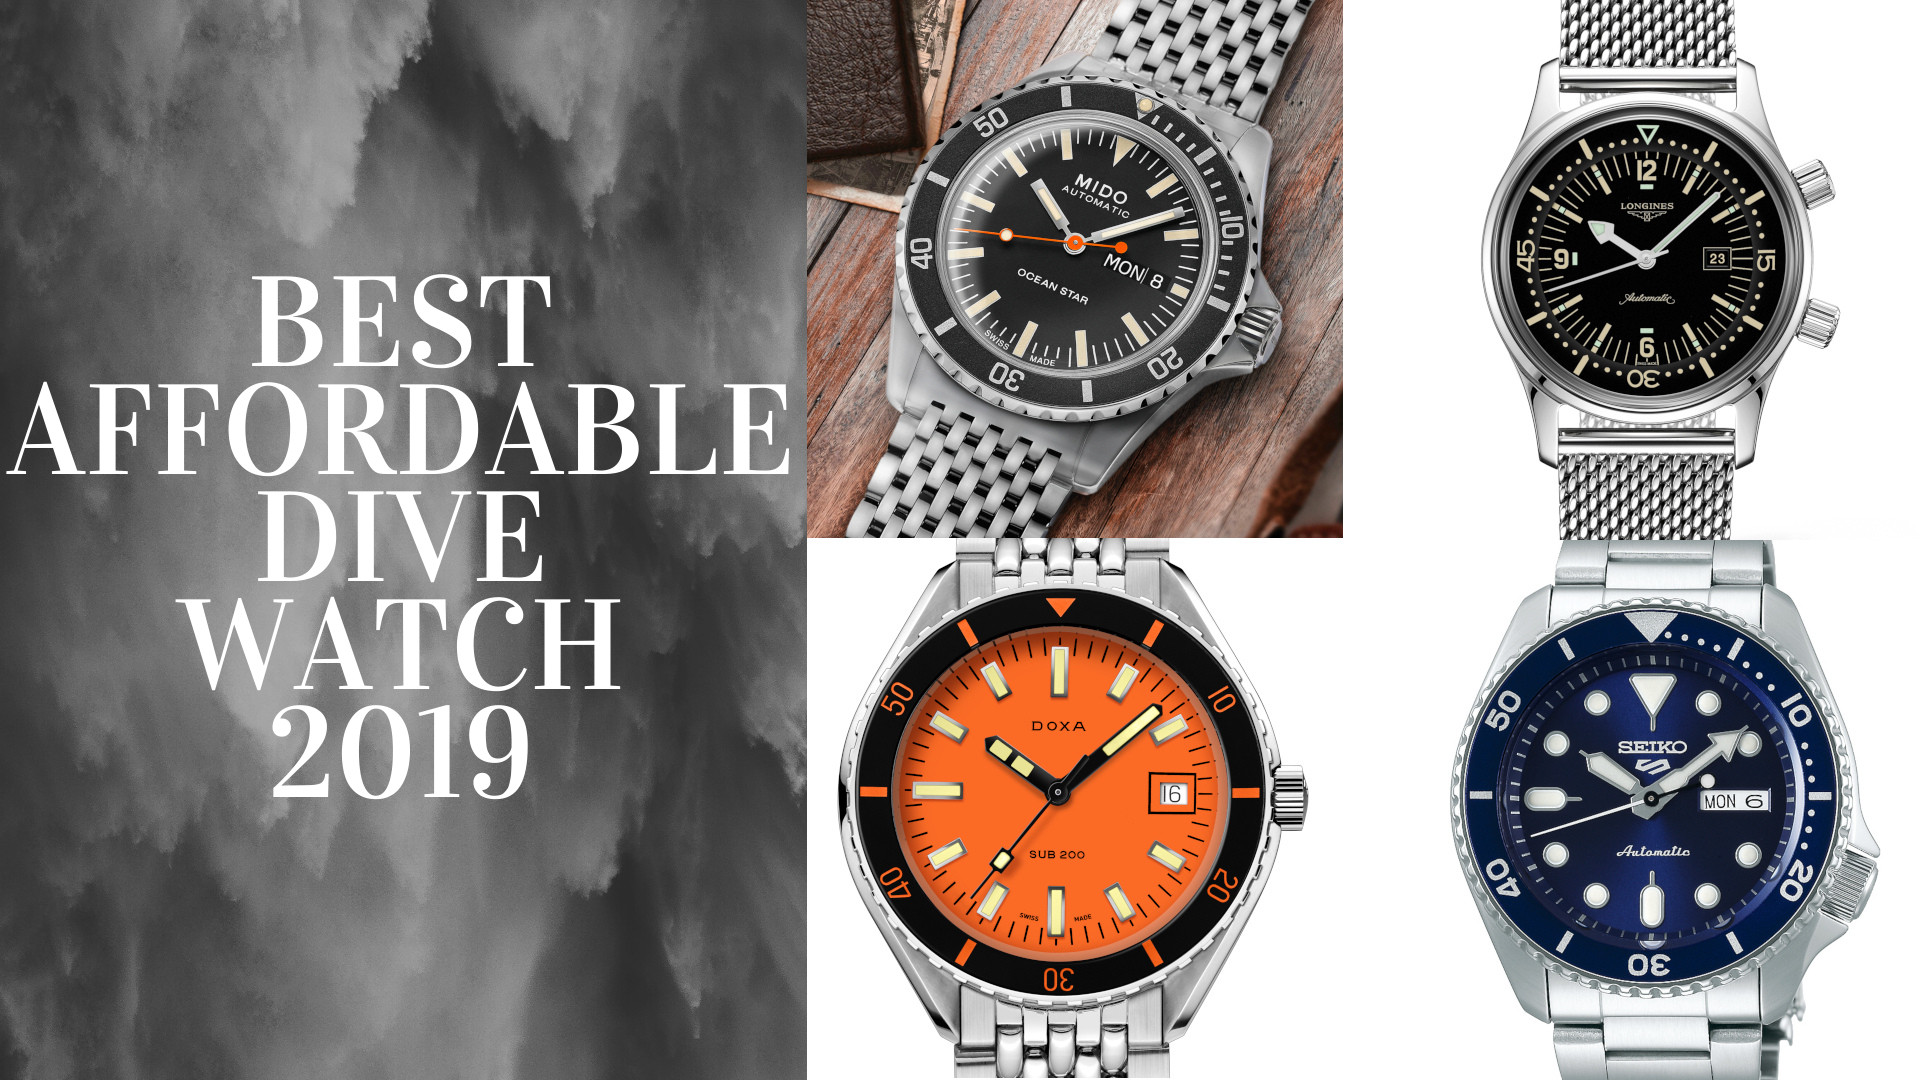 The most noteworthy and affordable dive watches of 2019